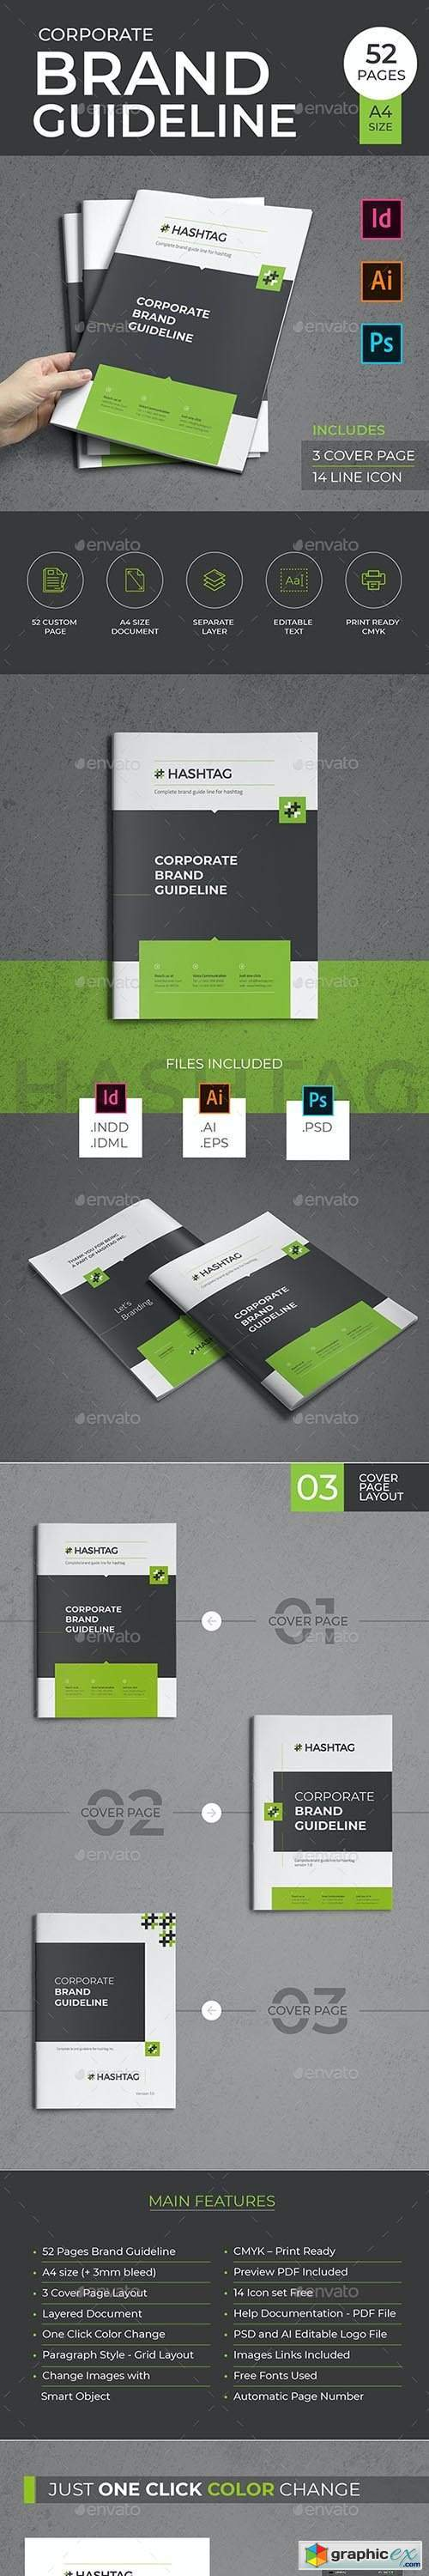 Corporate Brand Guidelines - Brand Manuals